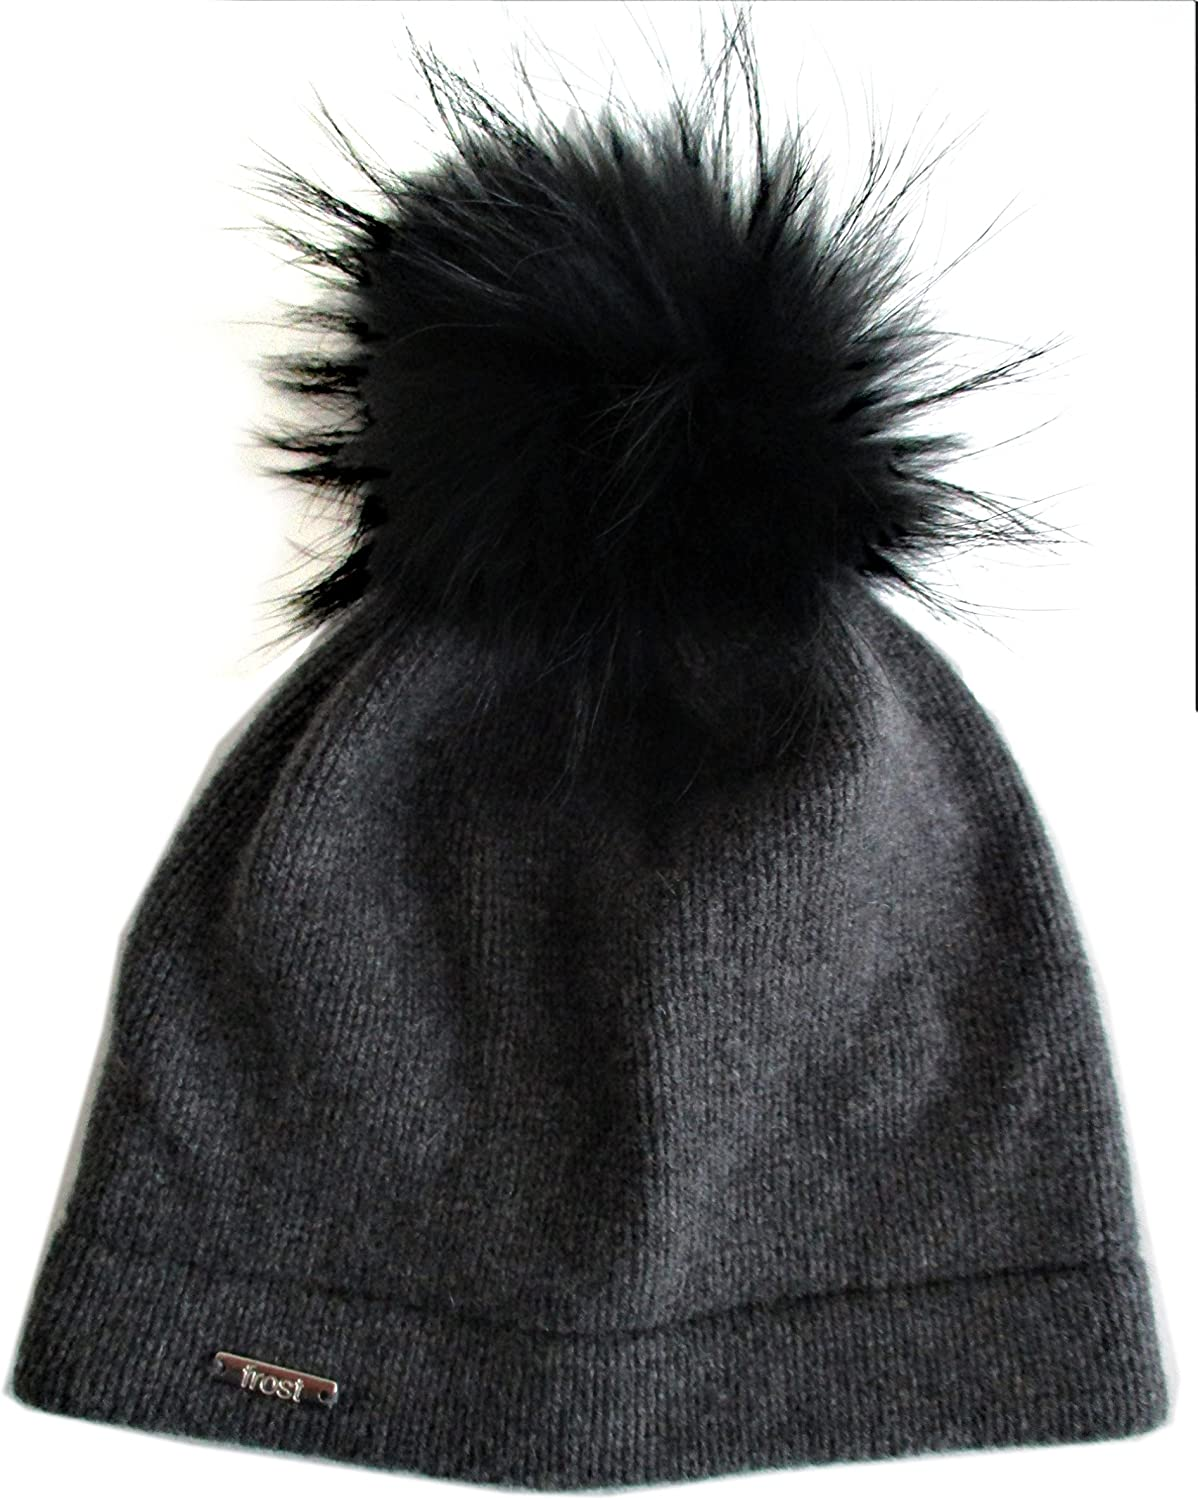 Frost Hats 2021 spring and summer new Cashmere Classic Hat Gifts Genuine Fox Fur with Detachable